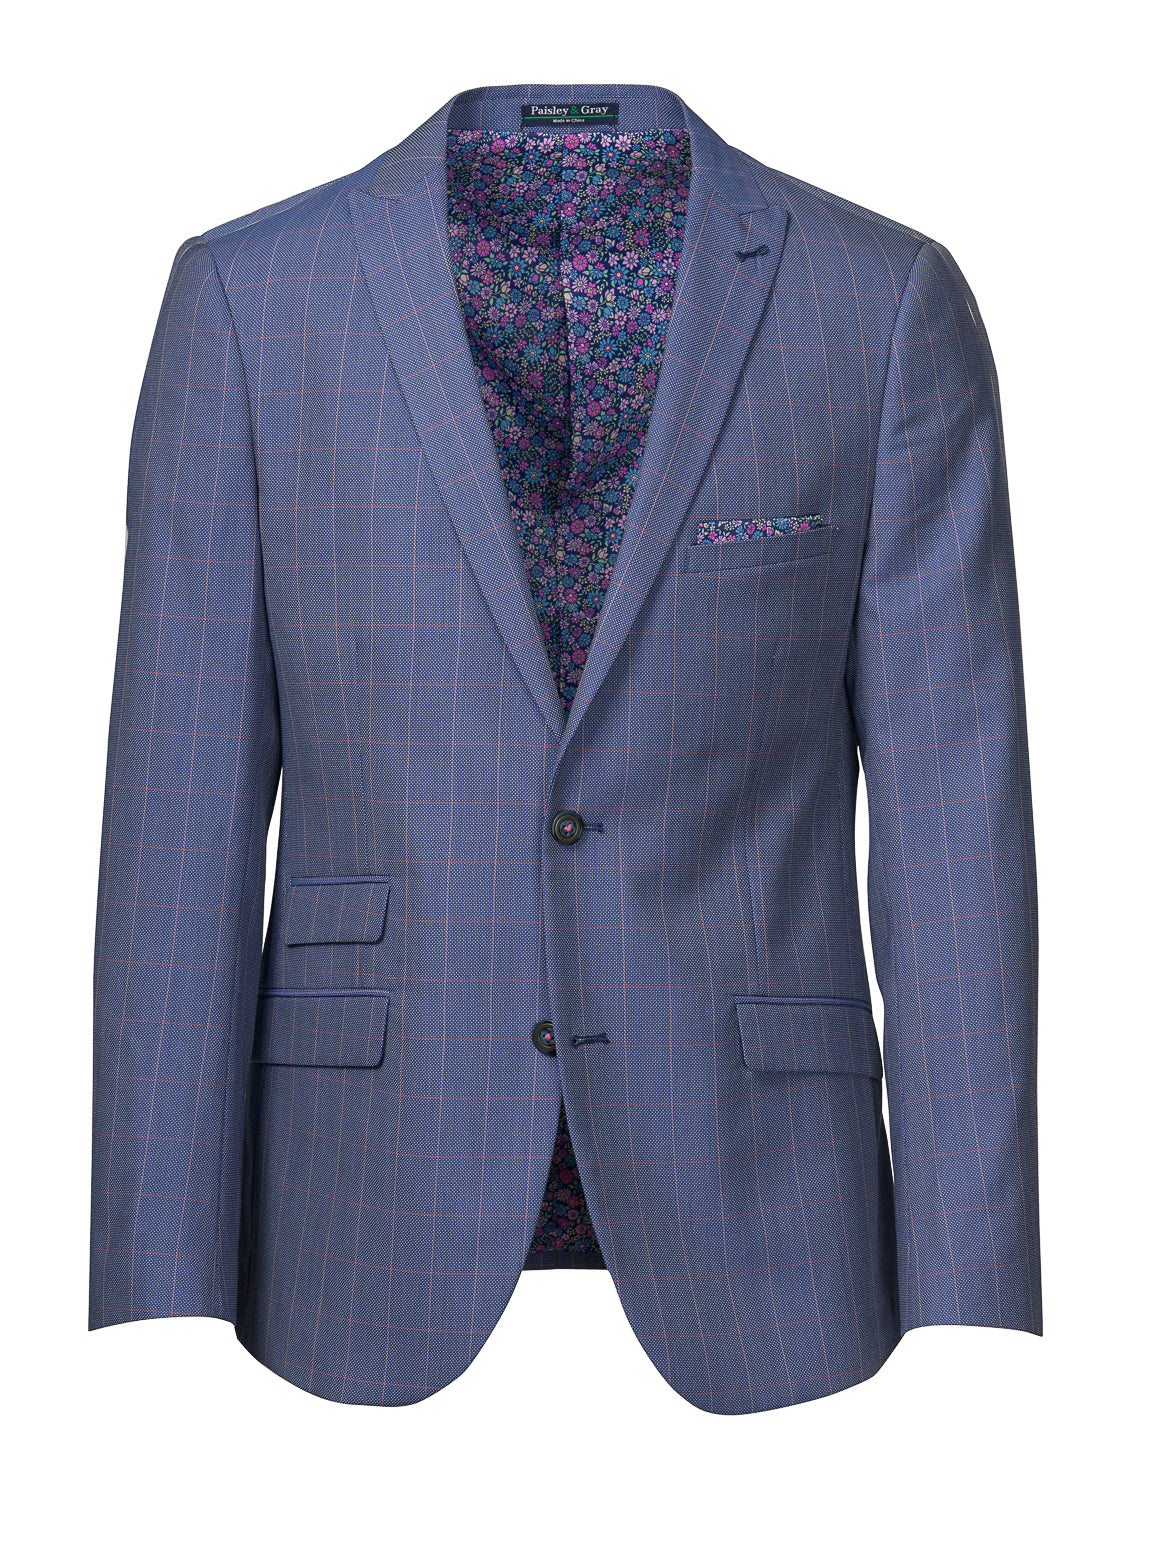 Ashton Peak Jacket - Slim - Blue & Pink Grid